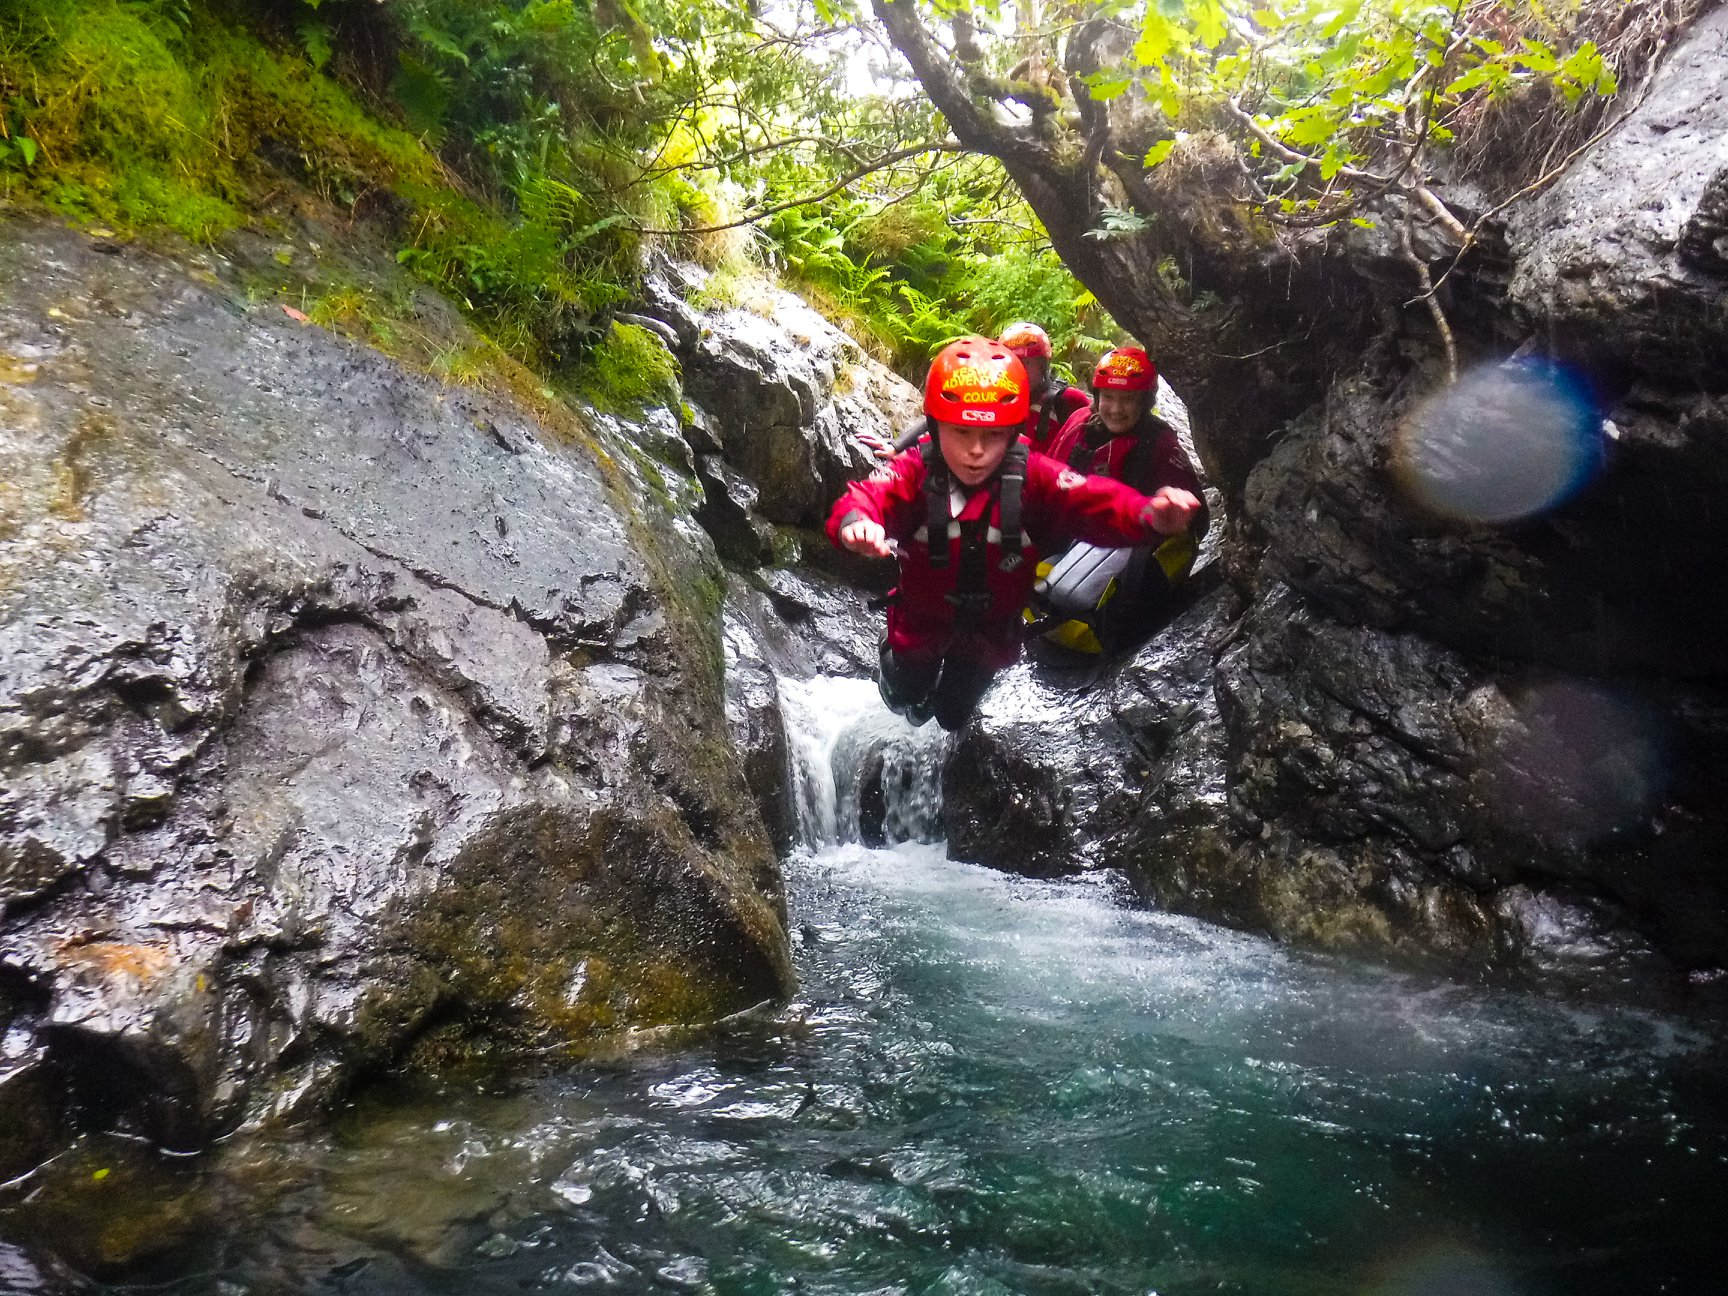 Lake District ghyll scrambling experience in Keswick